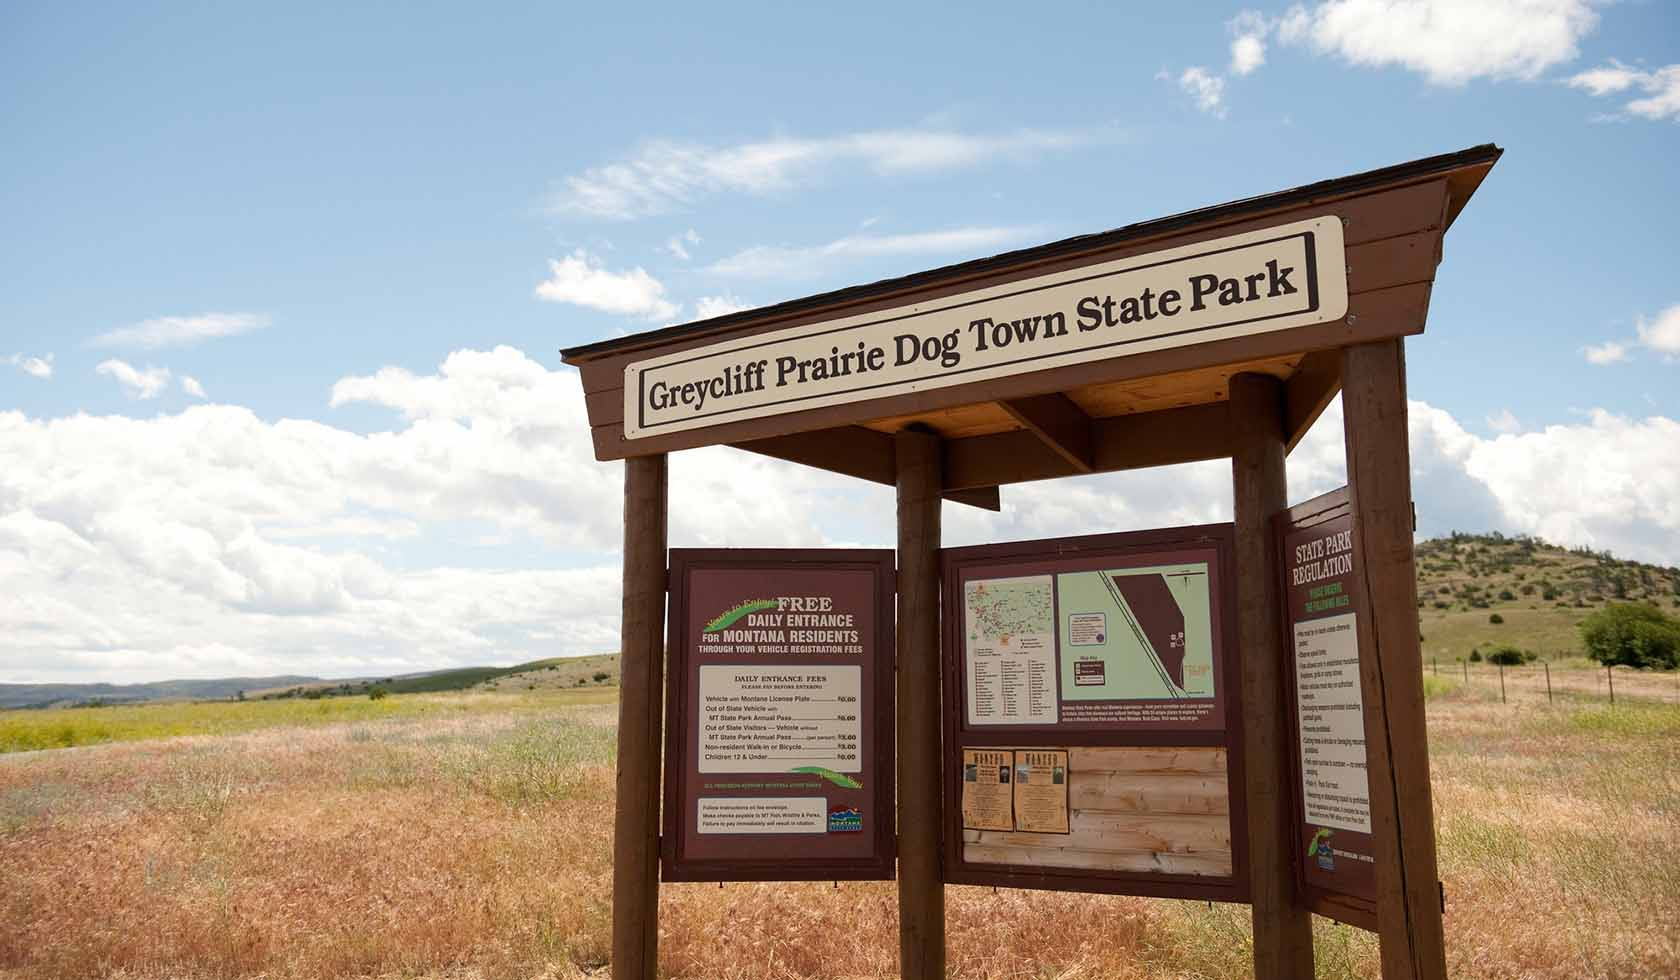 Greycliff prairie dog town state park - Towne place at garden state park ...